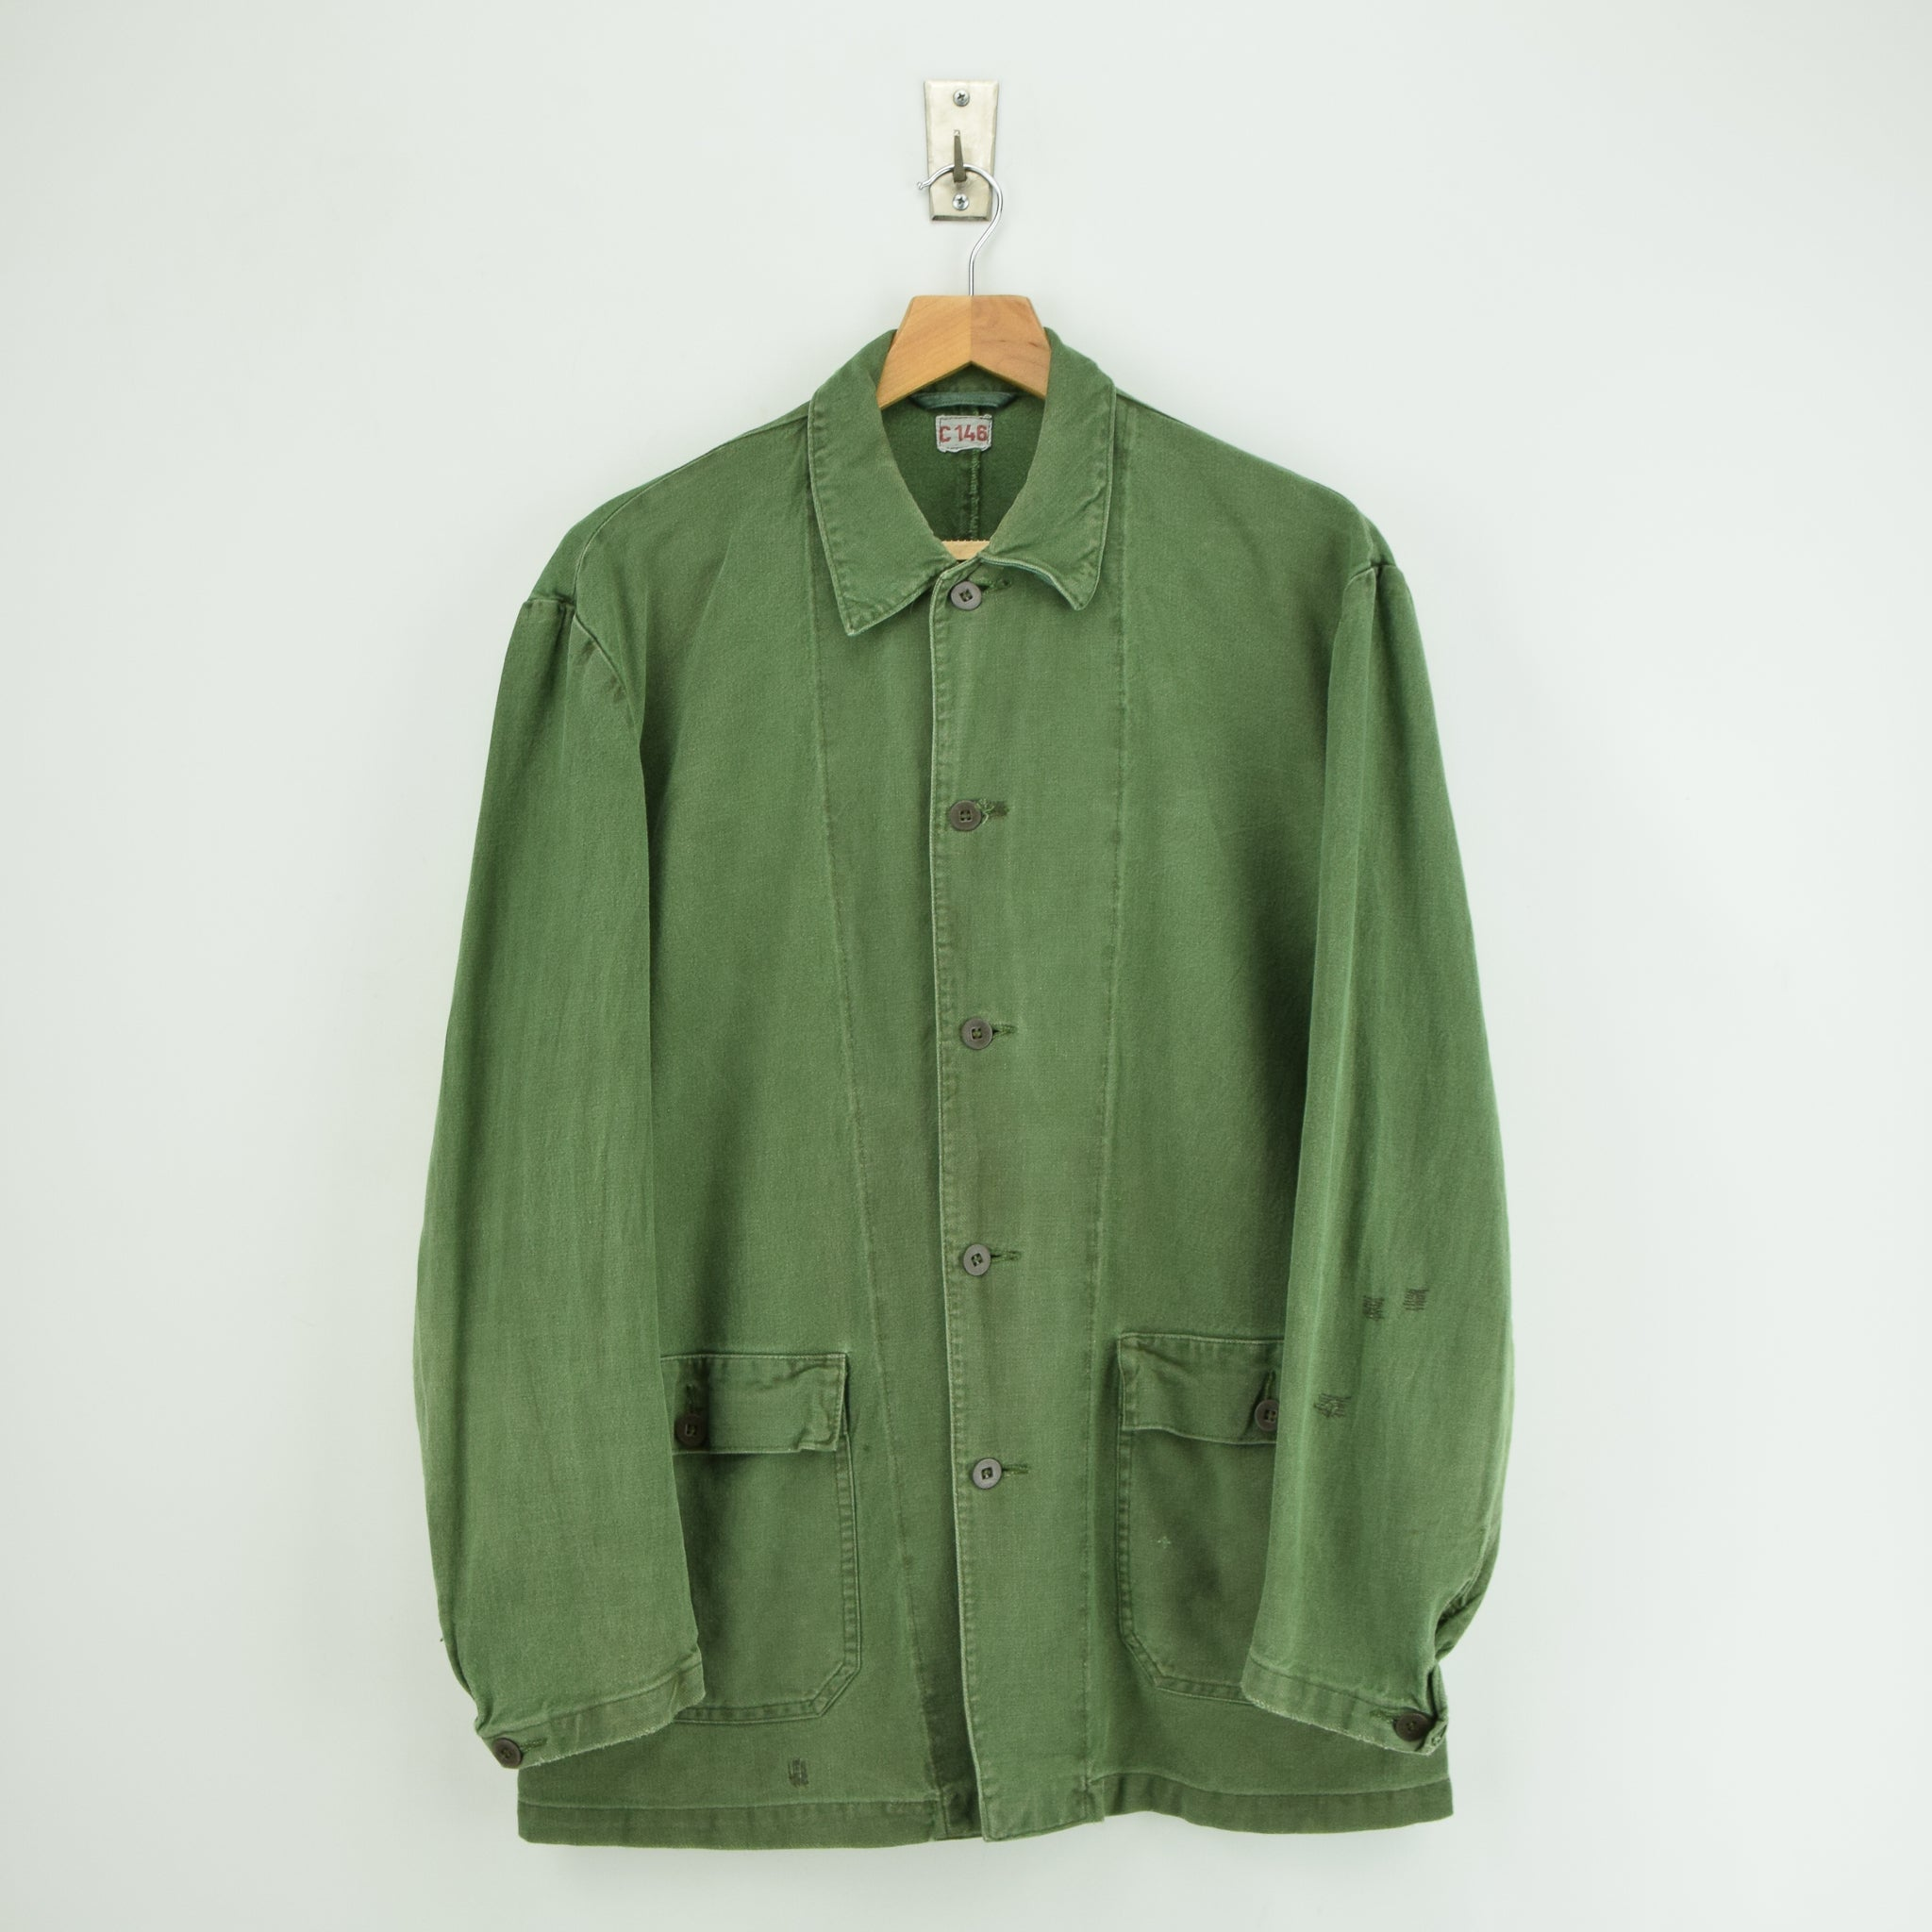 Vintage Swedish Worker Style Distressed Green Military Cotton Field Jacket M / L front